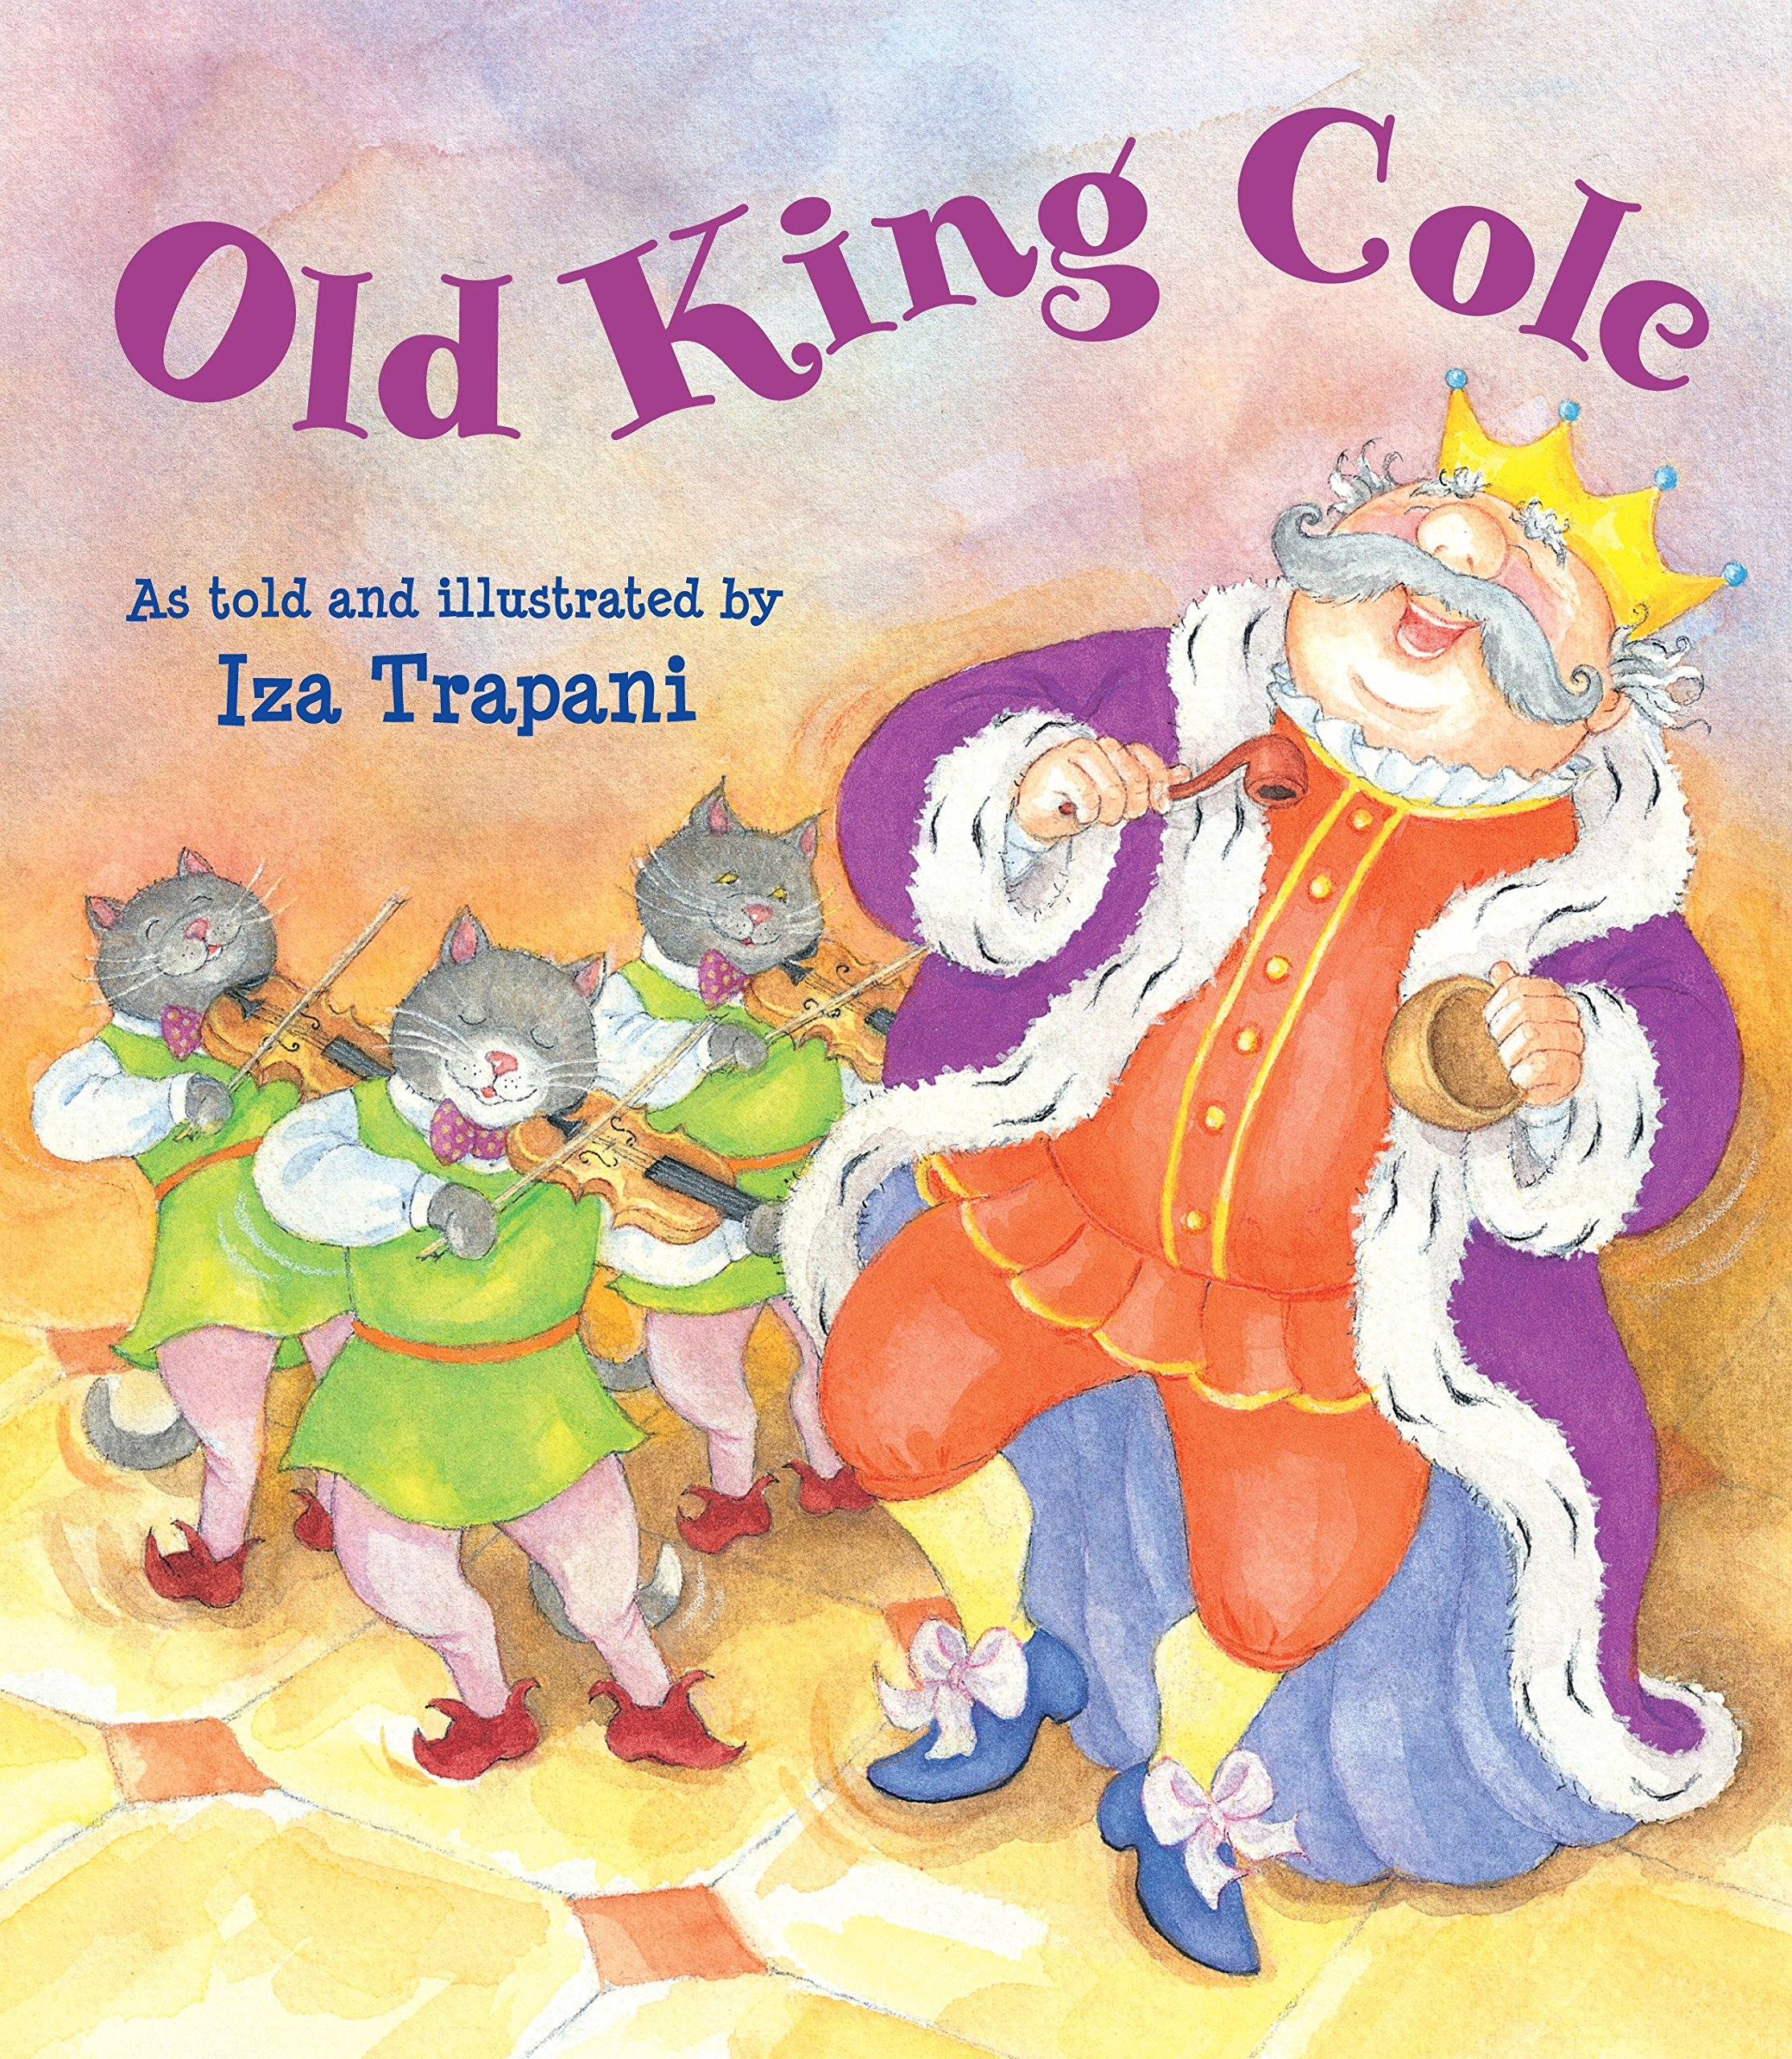 Old King Cole (Iza Trapani's Extended Nursery Rhymes)